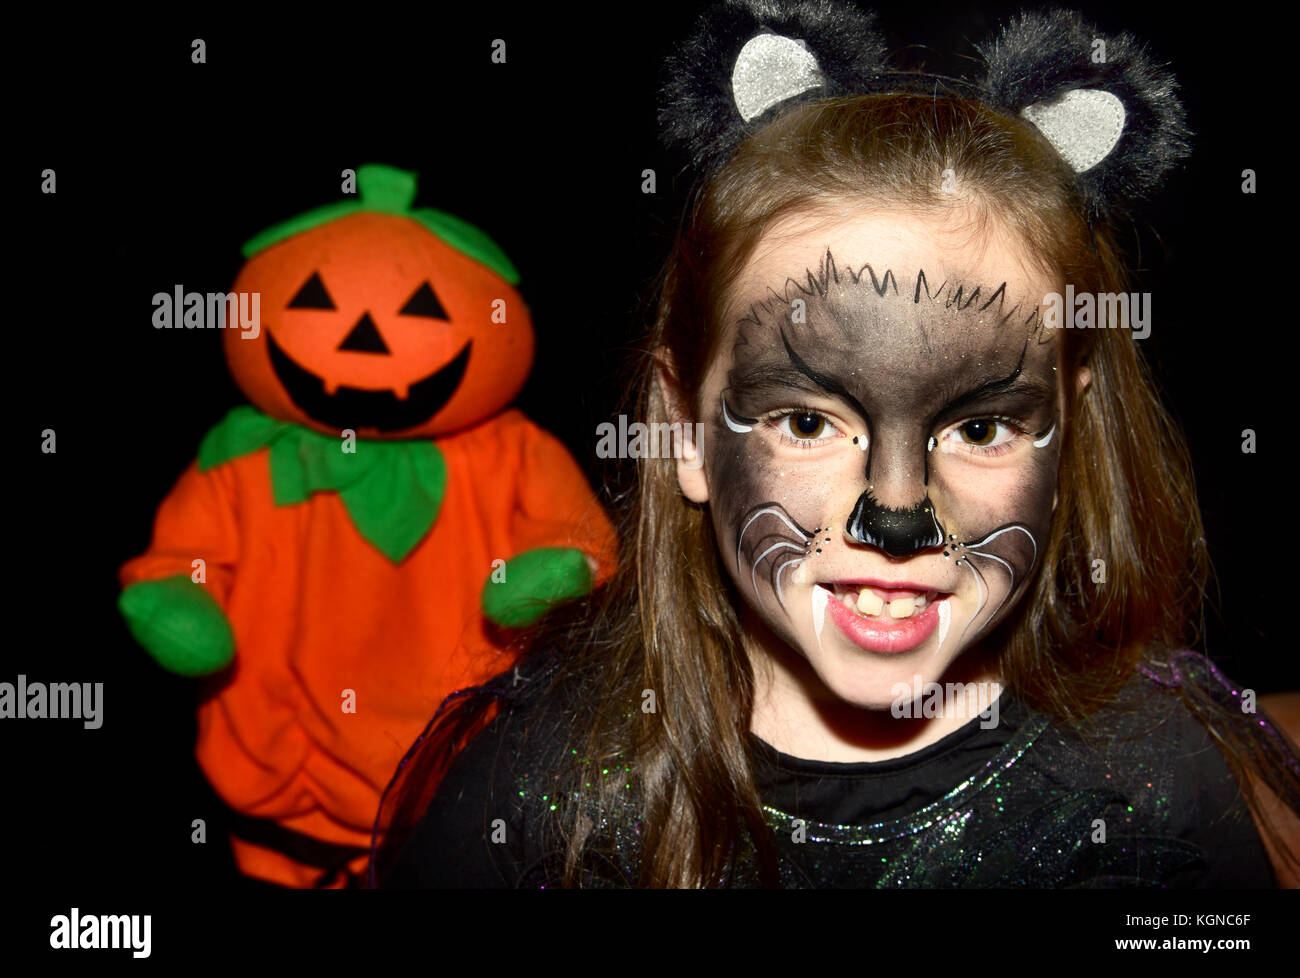 7 year old girl dressed up in costume for Halloween Bordon H&shire UK  sc 1 st  Alamy & Orange Cat Dressed Up Stock Photos u0026 Orange Cat Dressed Up Stock ...